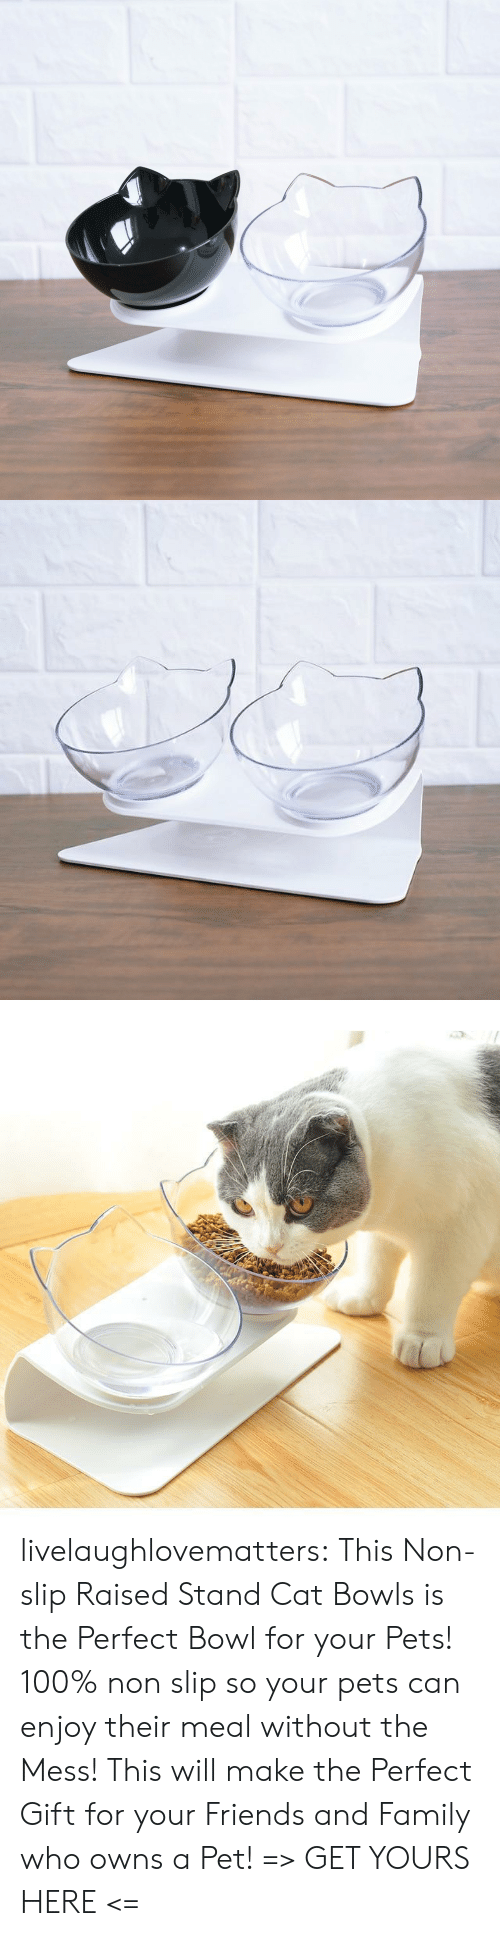 Pets: livelaughlovematters: ThisNon-slip Raised Stand Cat Bowls is the Perfect Bowl for your Pets! 100% non slip so your pets can enjoy their meal without the Mess! This will make the Perfect Gift for your Friends and Family who owns a Pet! => GET YOURS HERE <=